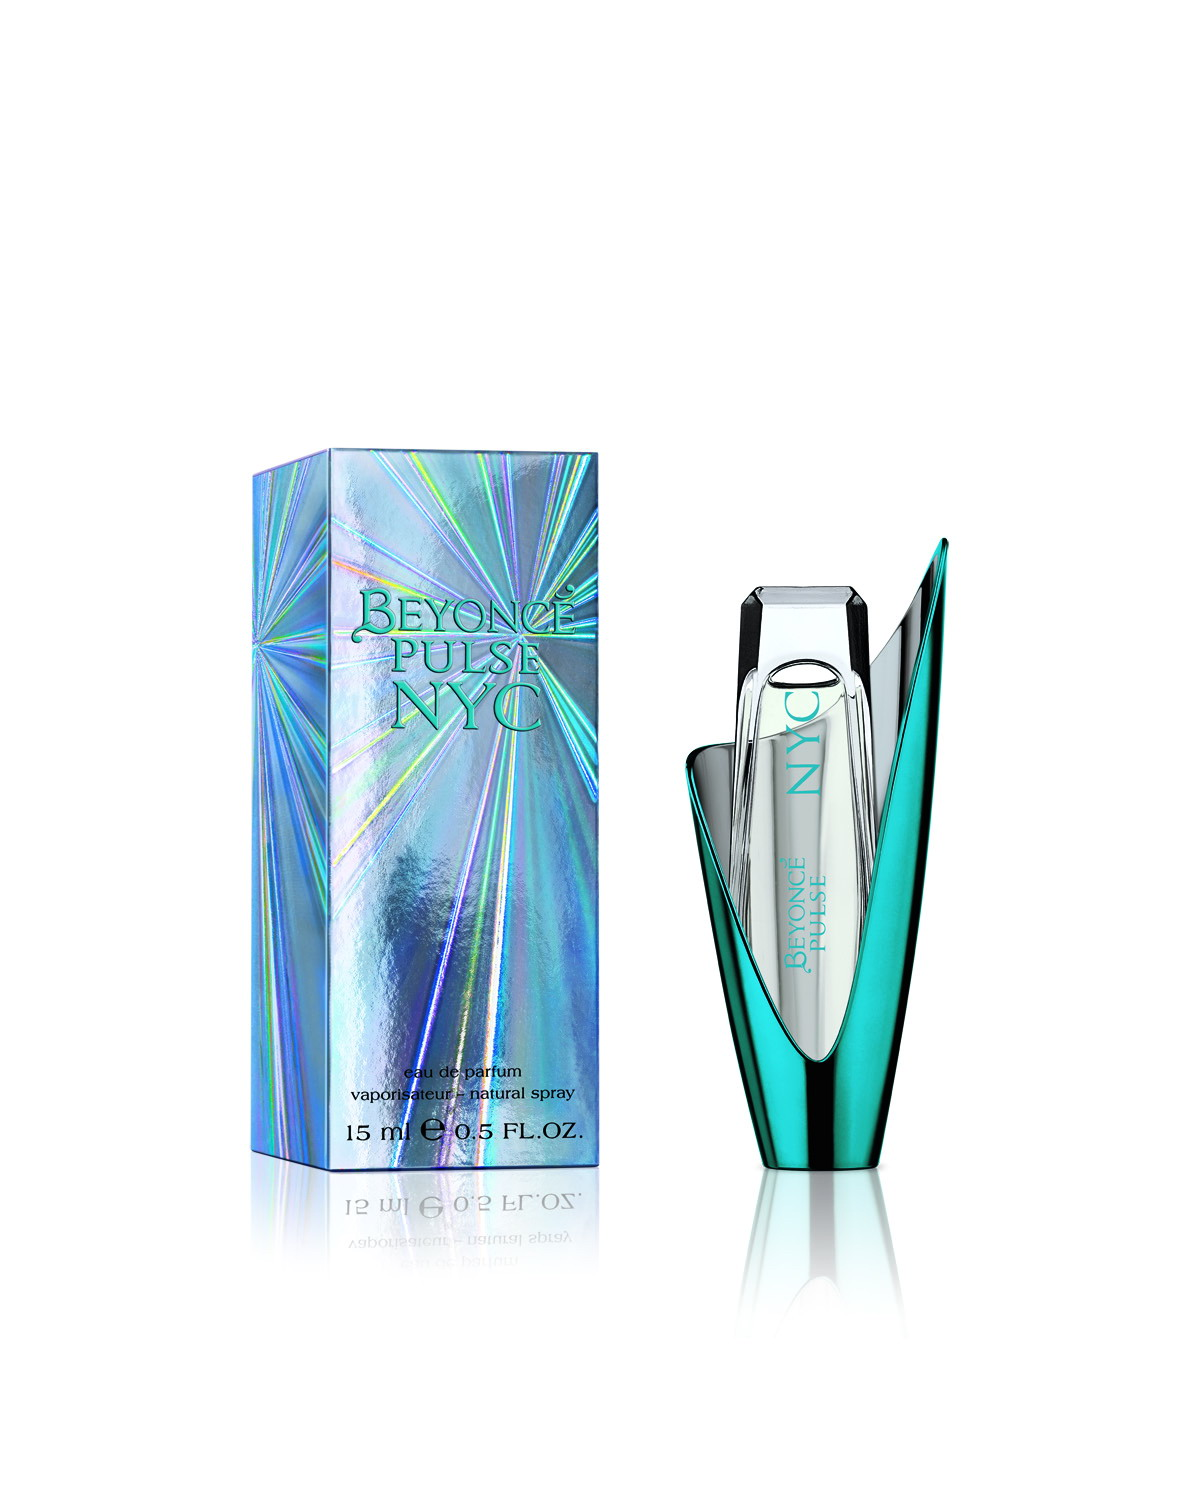 BEYONCE PULSE PRODUCT